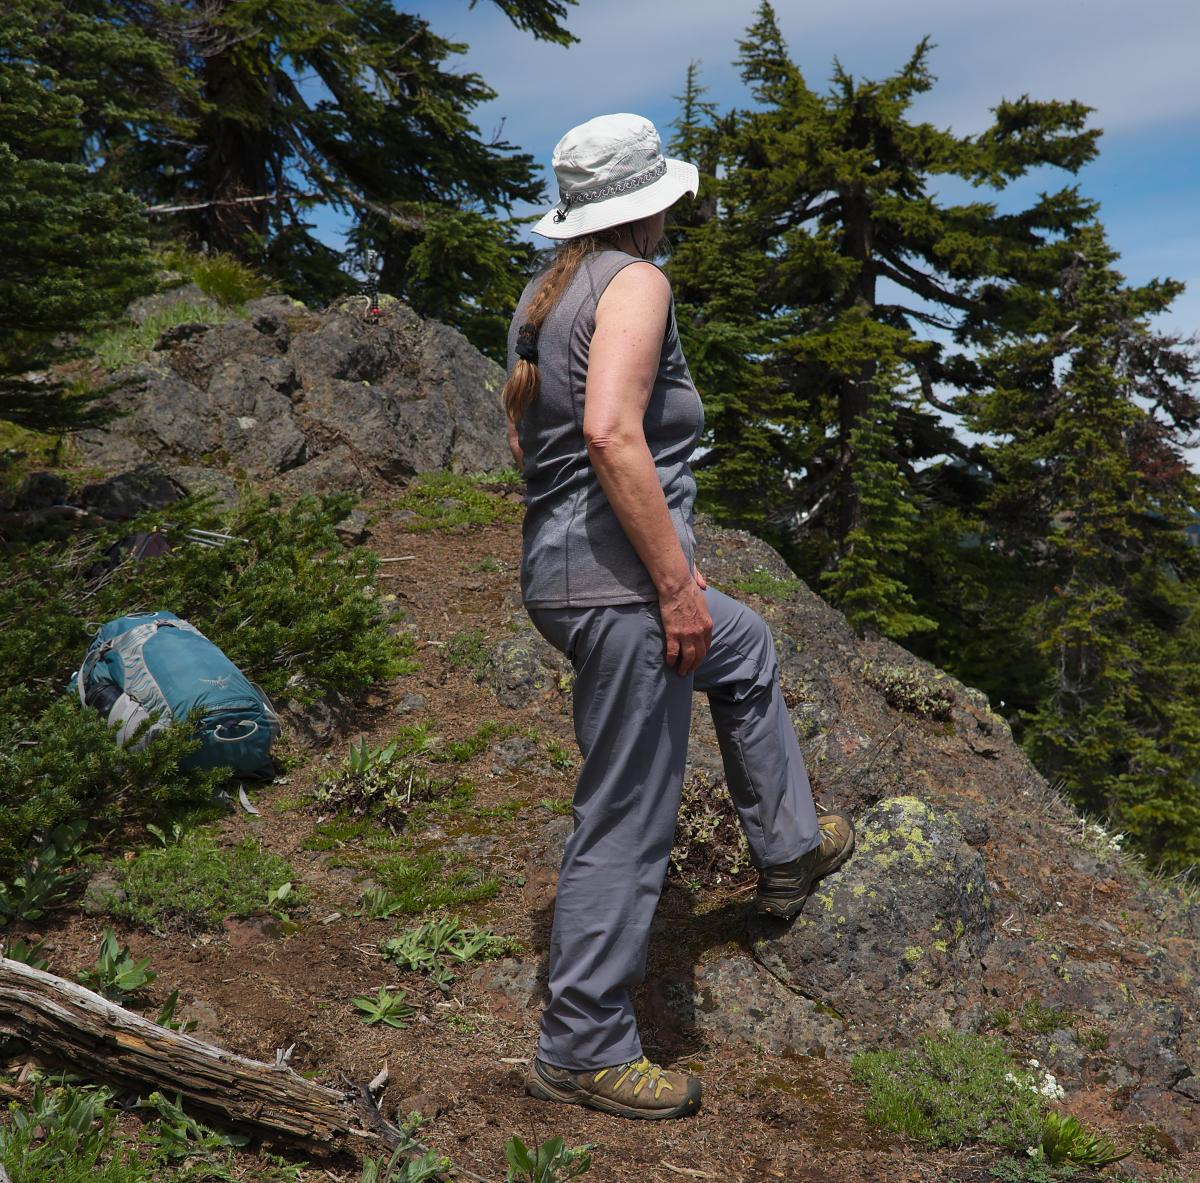 Female hiker at rest stop on ridge top, wearing moisture wicking hiking pants and shirt, boots and sun hat.